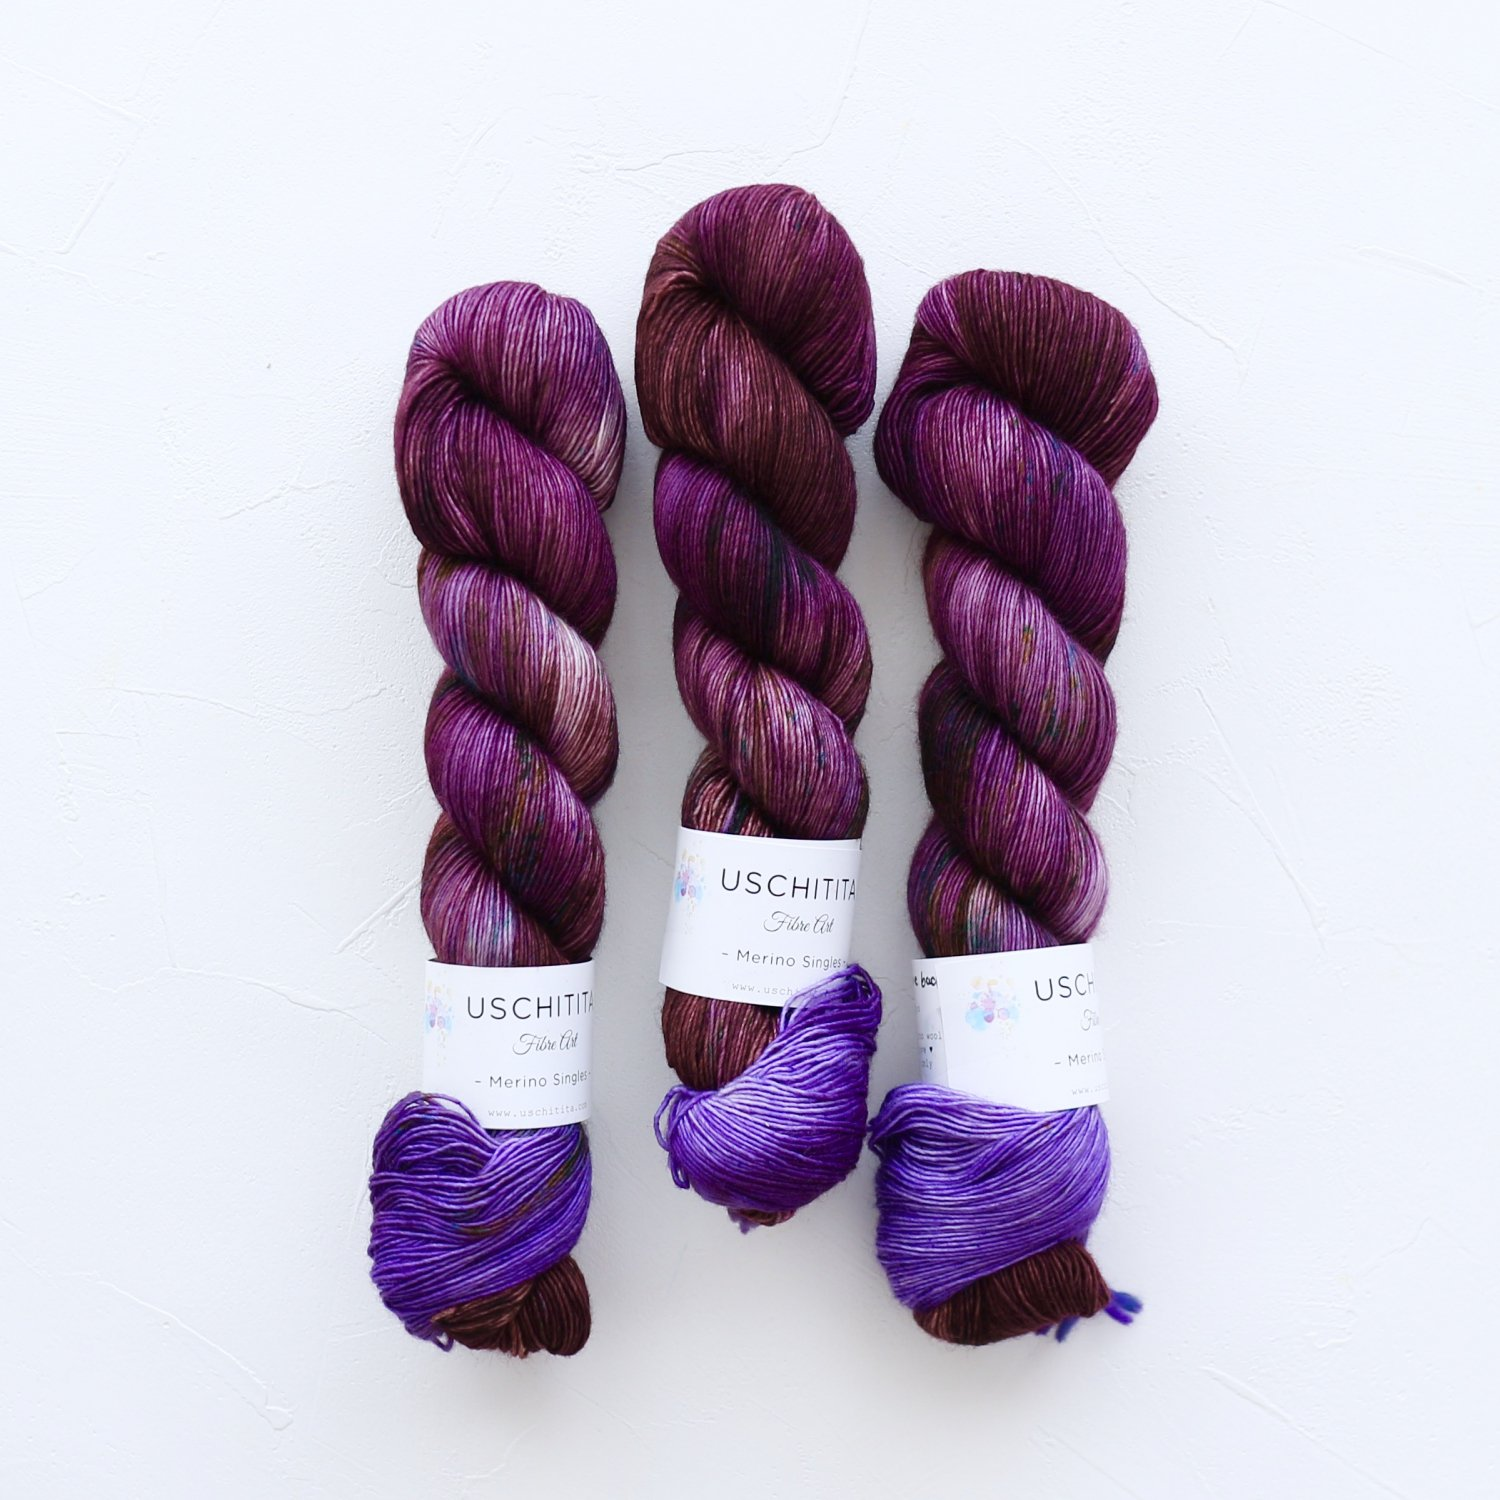 【uschitita】<br>Merino Singles<br>Eyes Wide Shut gone bad